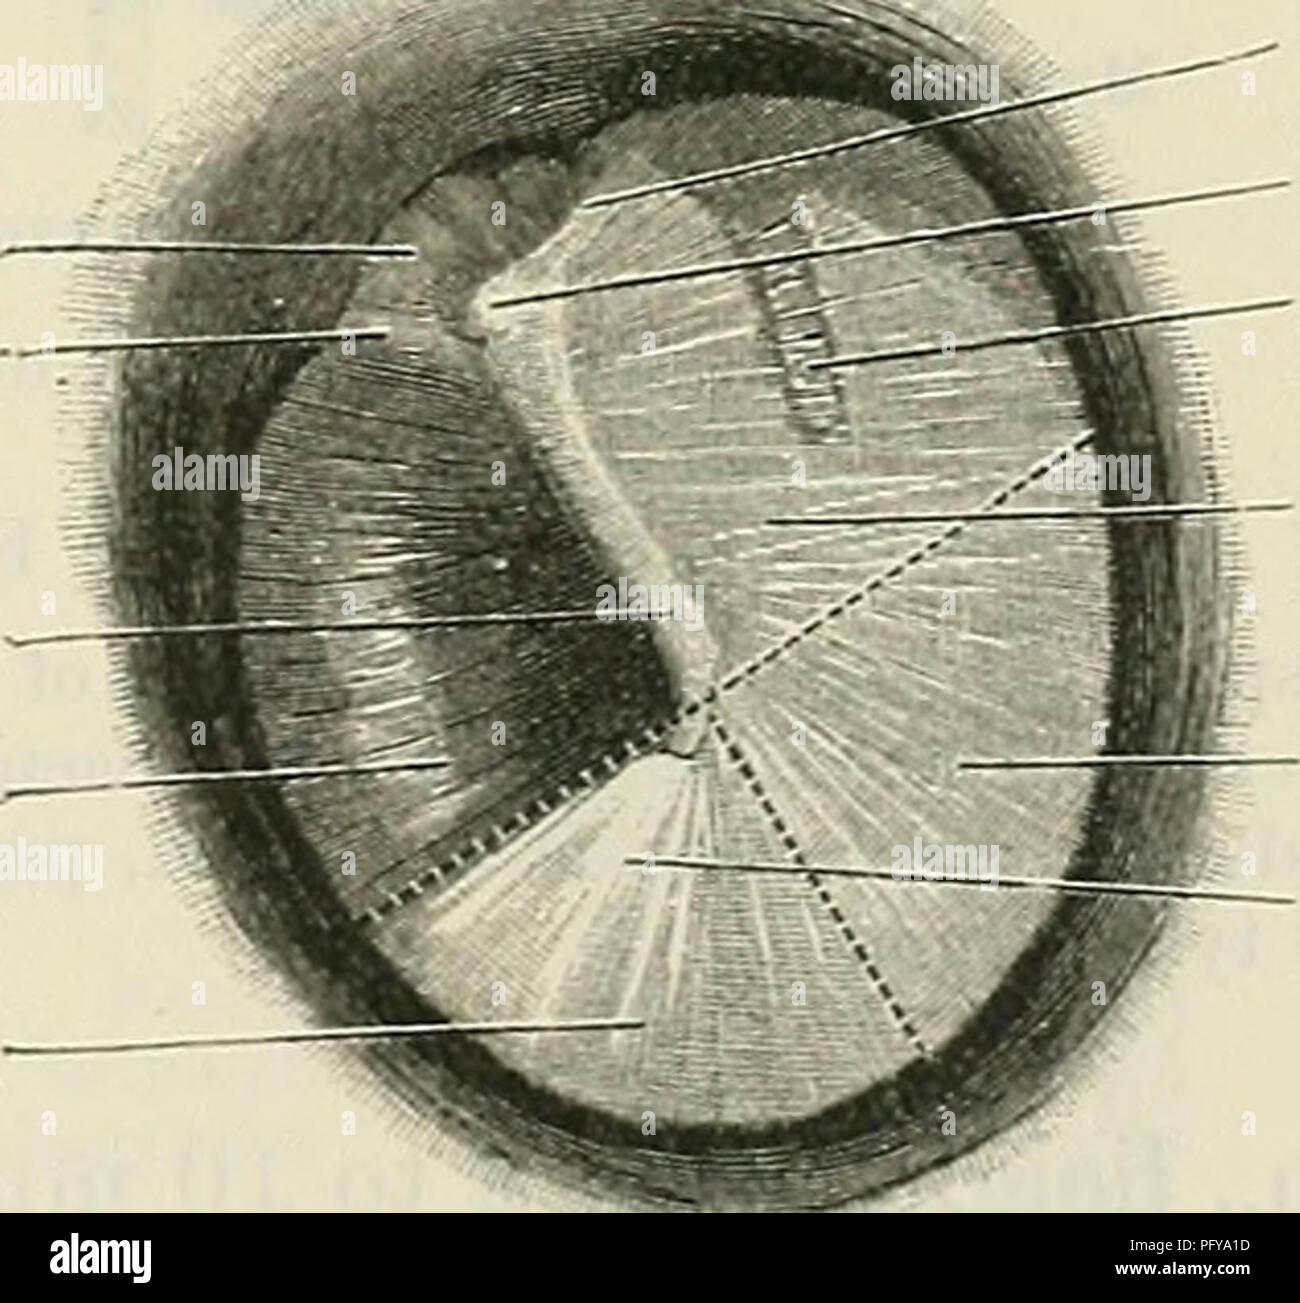 . Cunningham's Text-book of anatomy. Anatomy. TYMPANIC CAVITY OR MIDDLE EAE. 835 anterior and posterior malleolar plicae. The small triangular portion of the membrane (Fig. 710) situated above these folds is thin and lax, and constitutes the pars flaccida (O.T. membrane of Shrapnell); the main portion of the membrane is, on the other hand, tightly stretched and termed the pars tensa. A small orifice, sometimes seen in the pars flaccida, is probably either a pathological condition or has been produced artificially during manipulation. The manubrium mallei is firmly fixed to the medial surface o - Stock Image